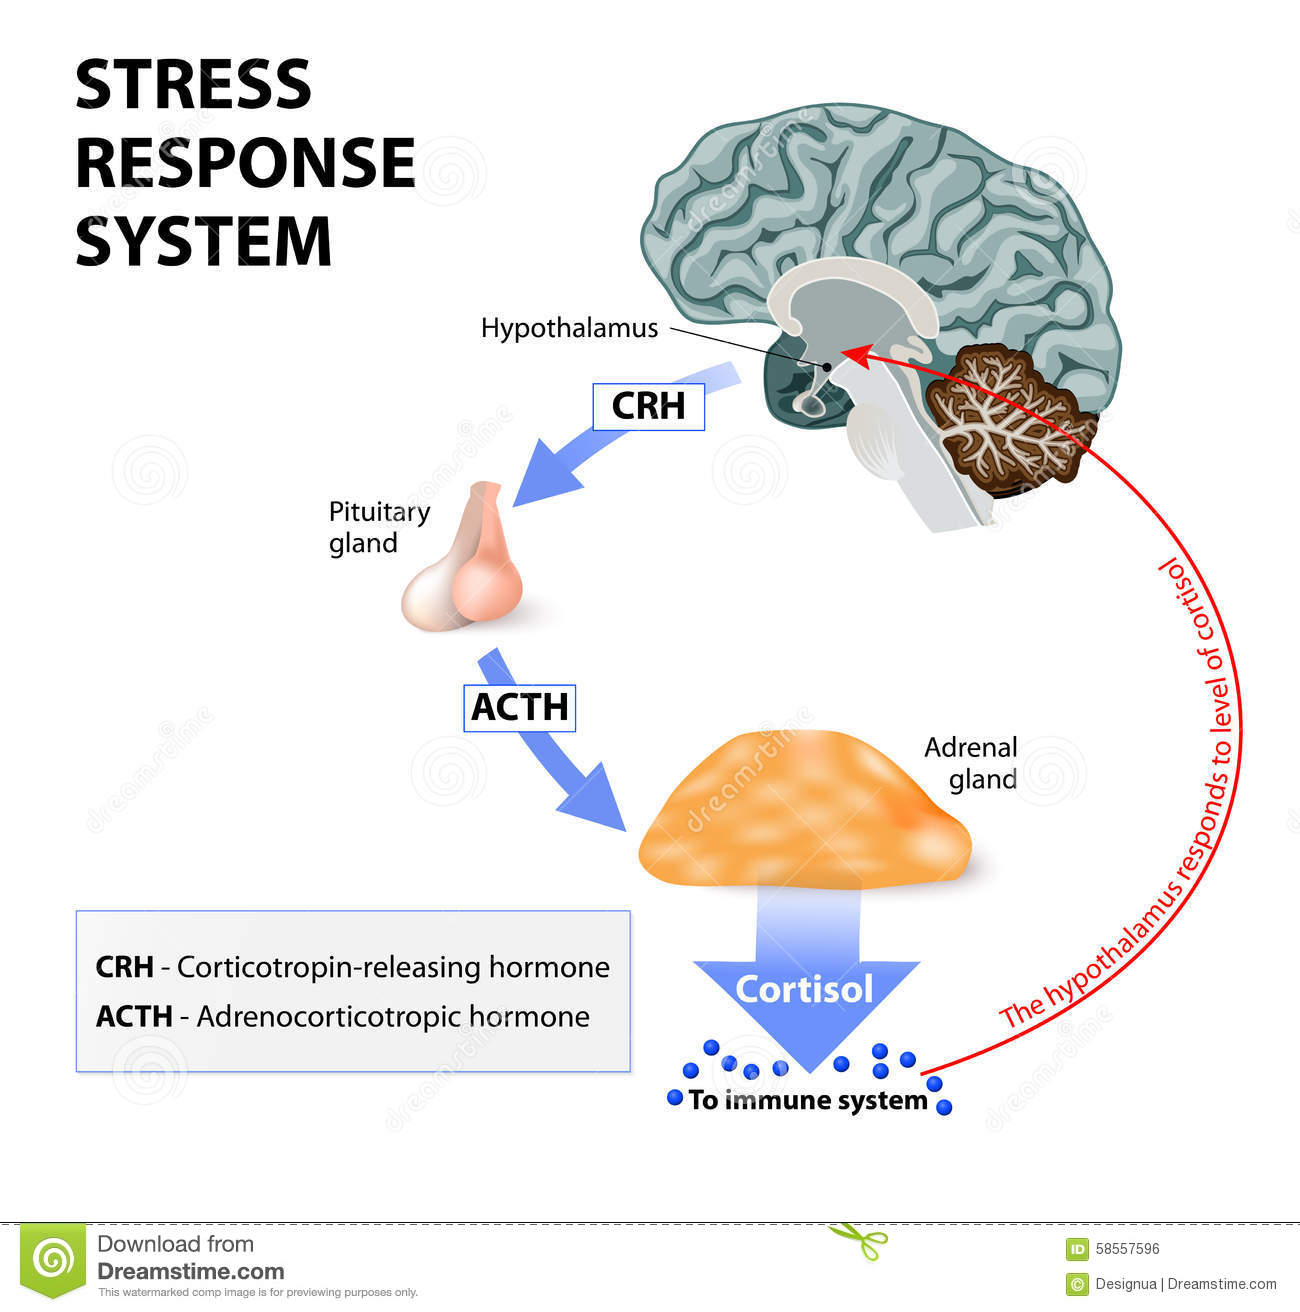 The causes of stress and the effects of stress management on the reduce of stress levels